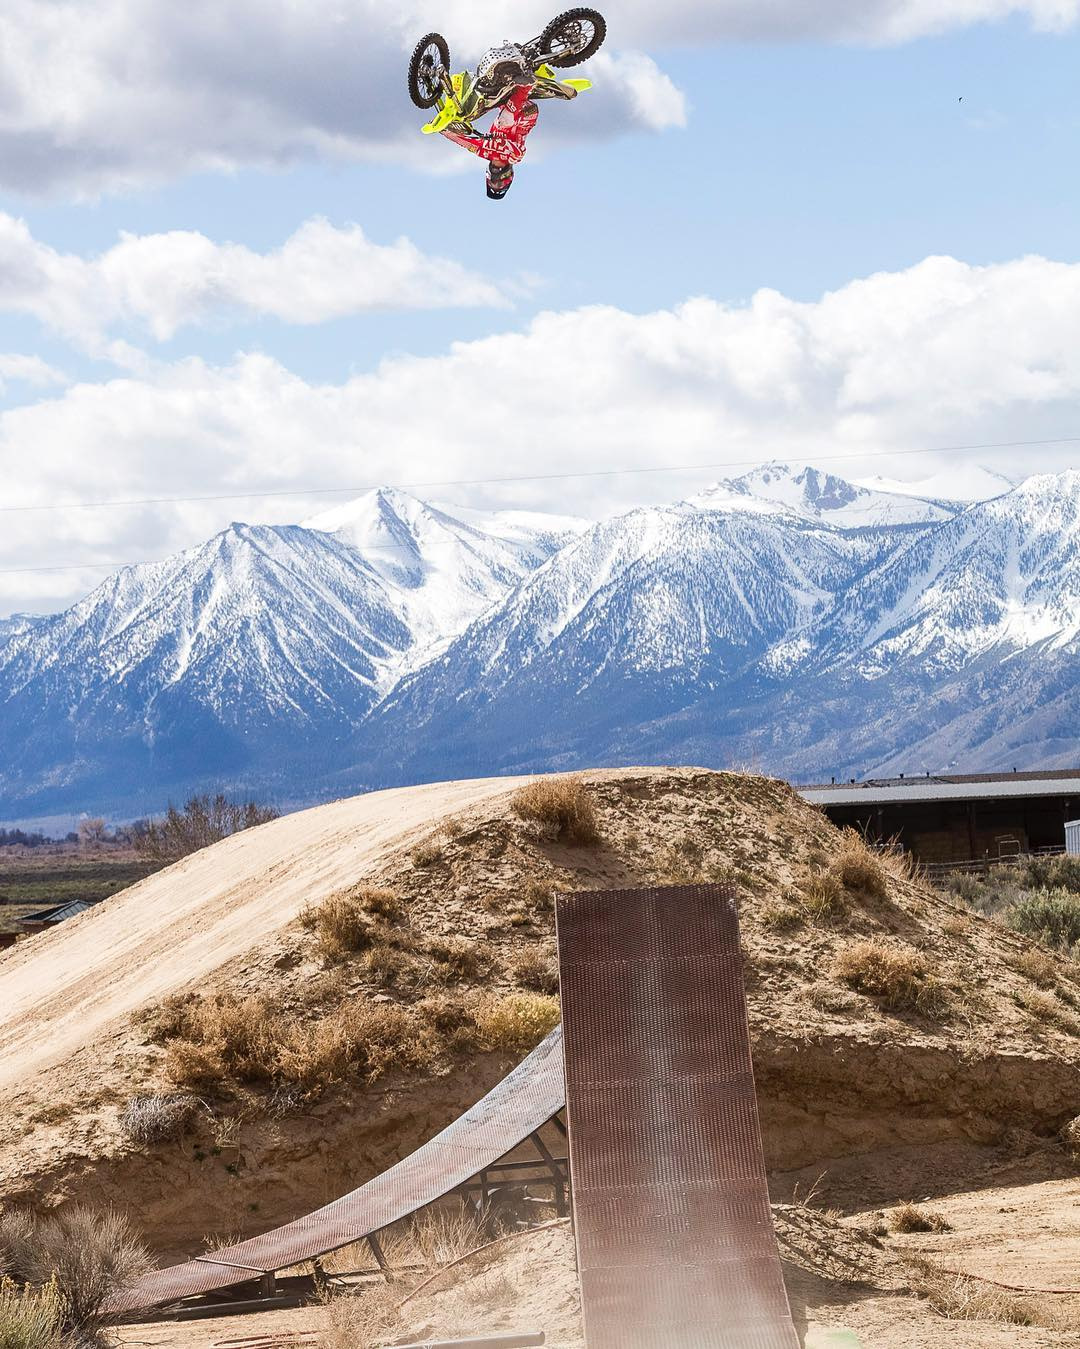 Four-time #XGames gold medalist @Mike_Mason81 is gettin' turnt in Minden, Nevada! (